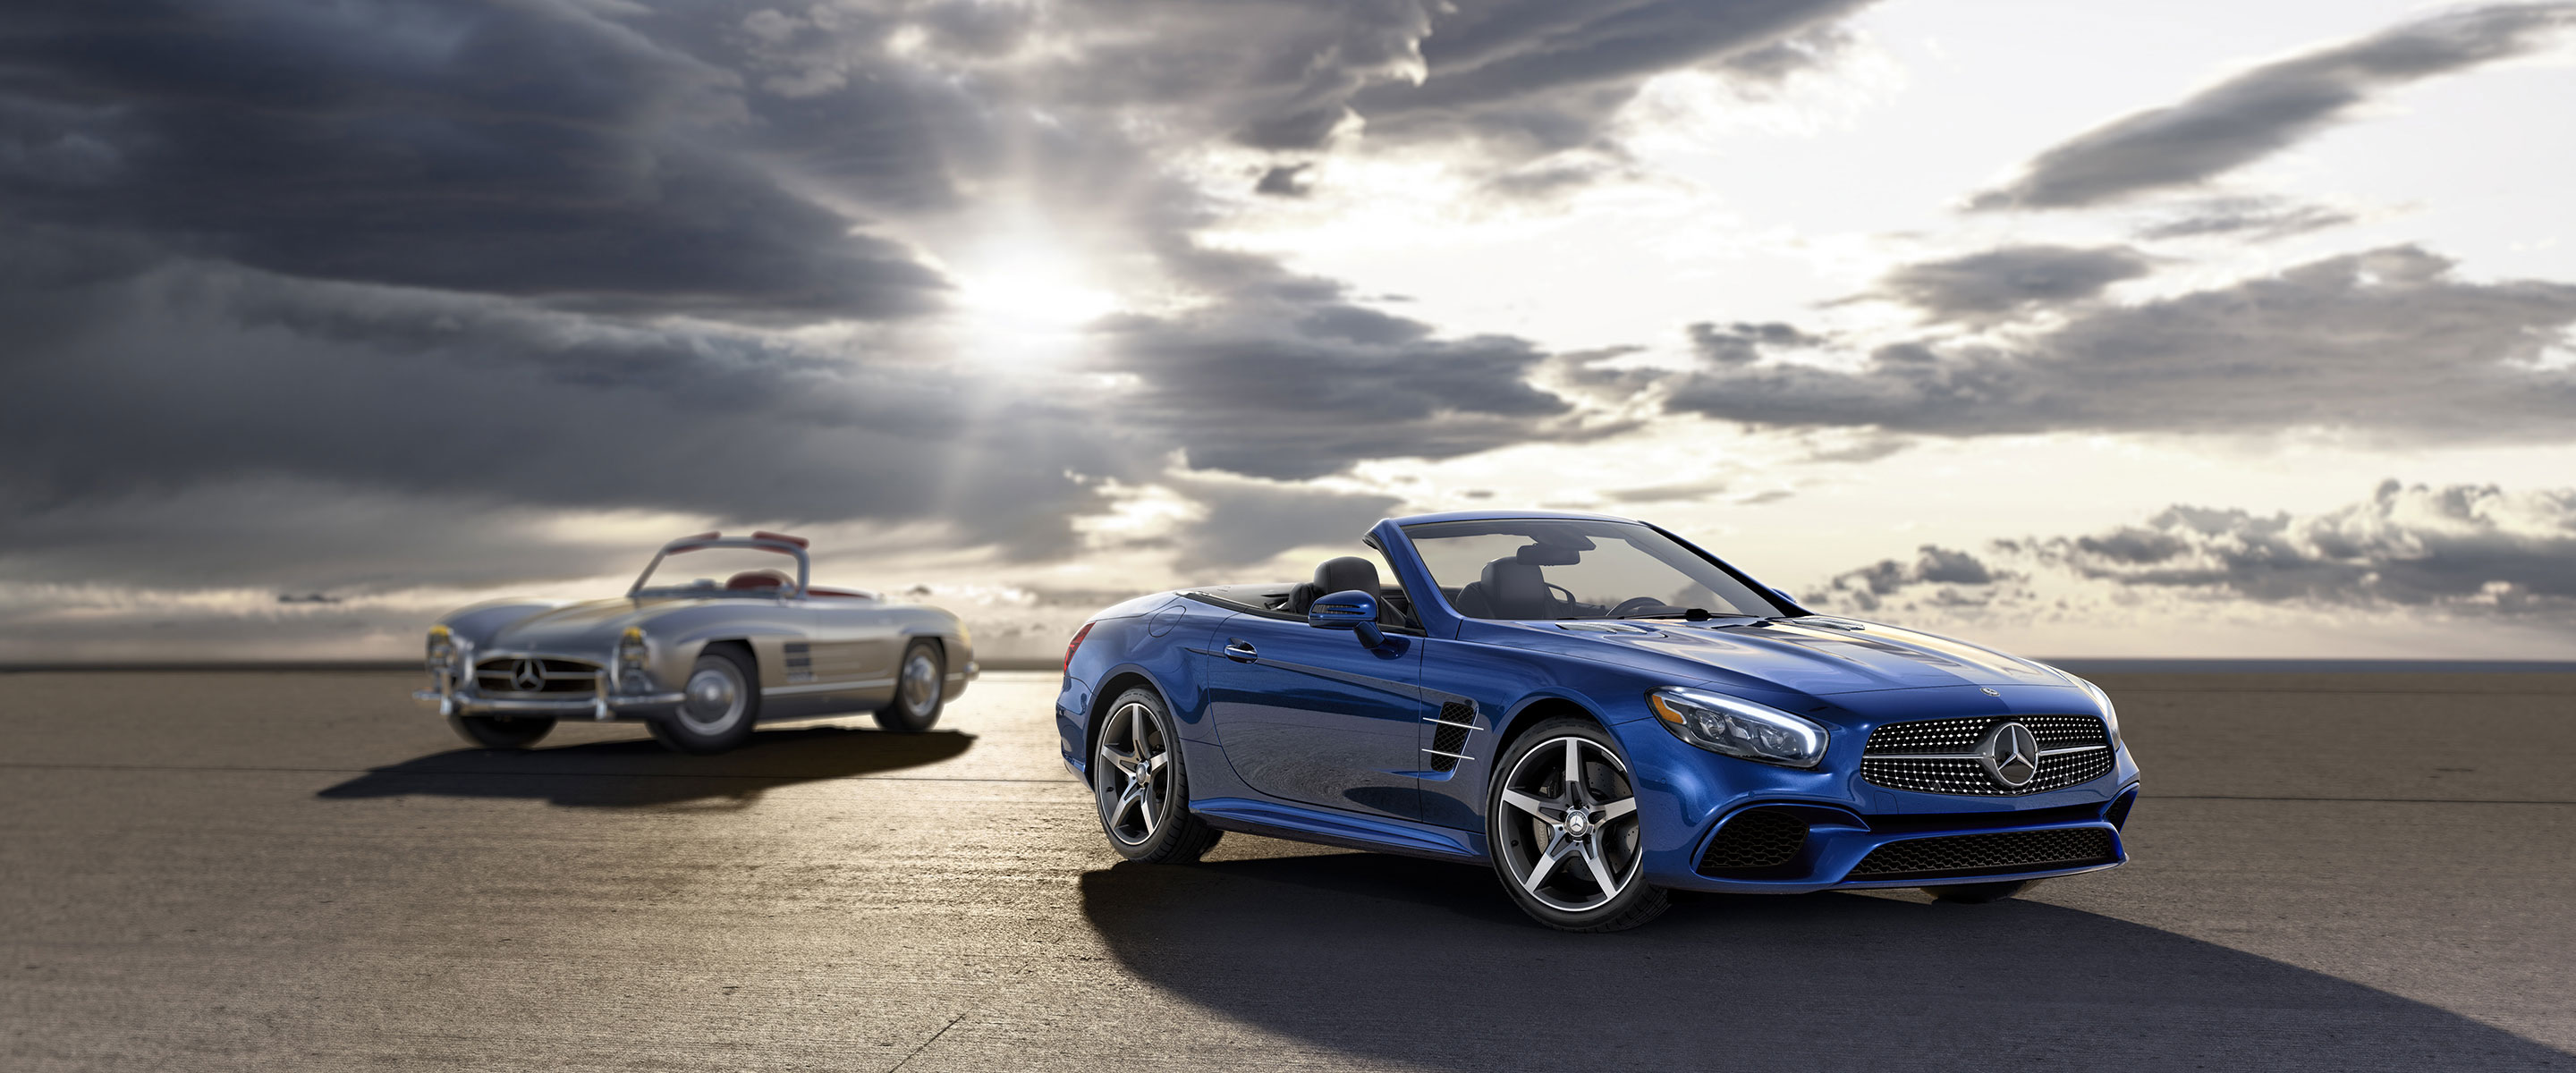 New mercedes benz sl roadster buy lease and finance for Mercede benz financial